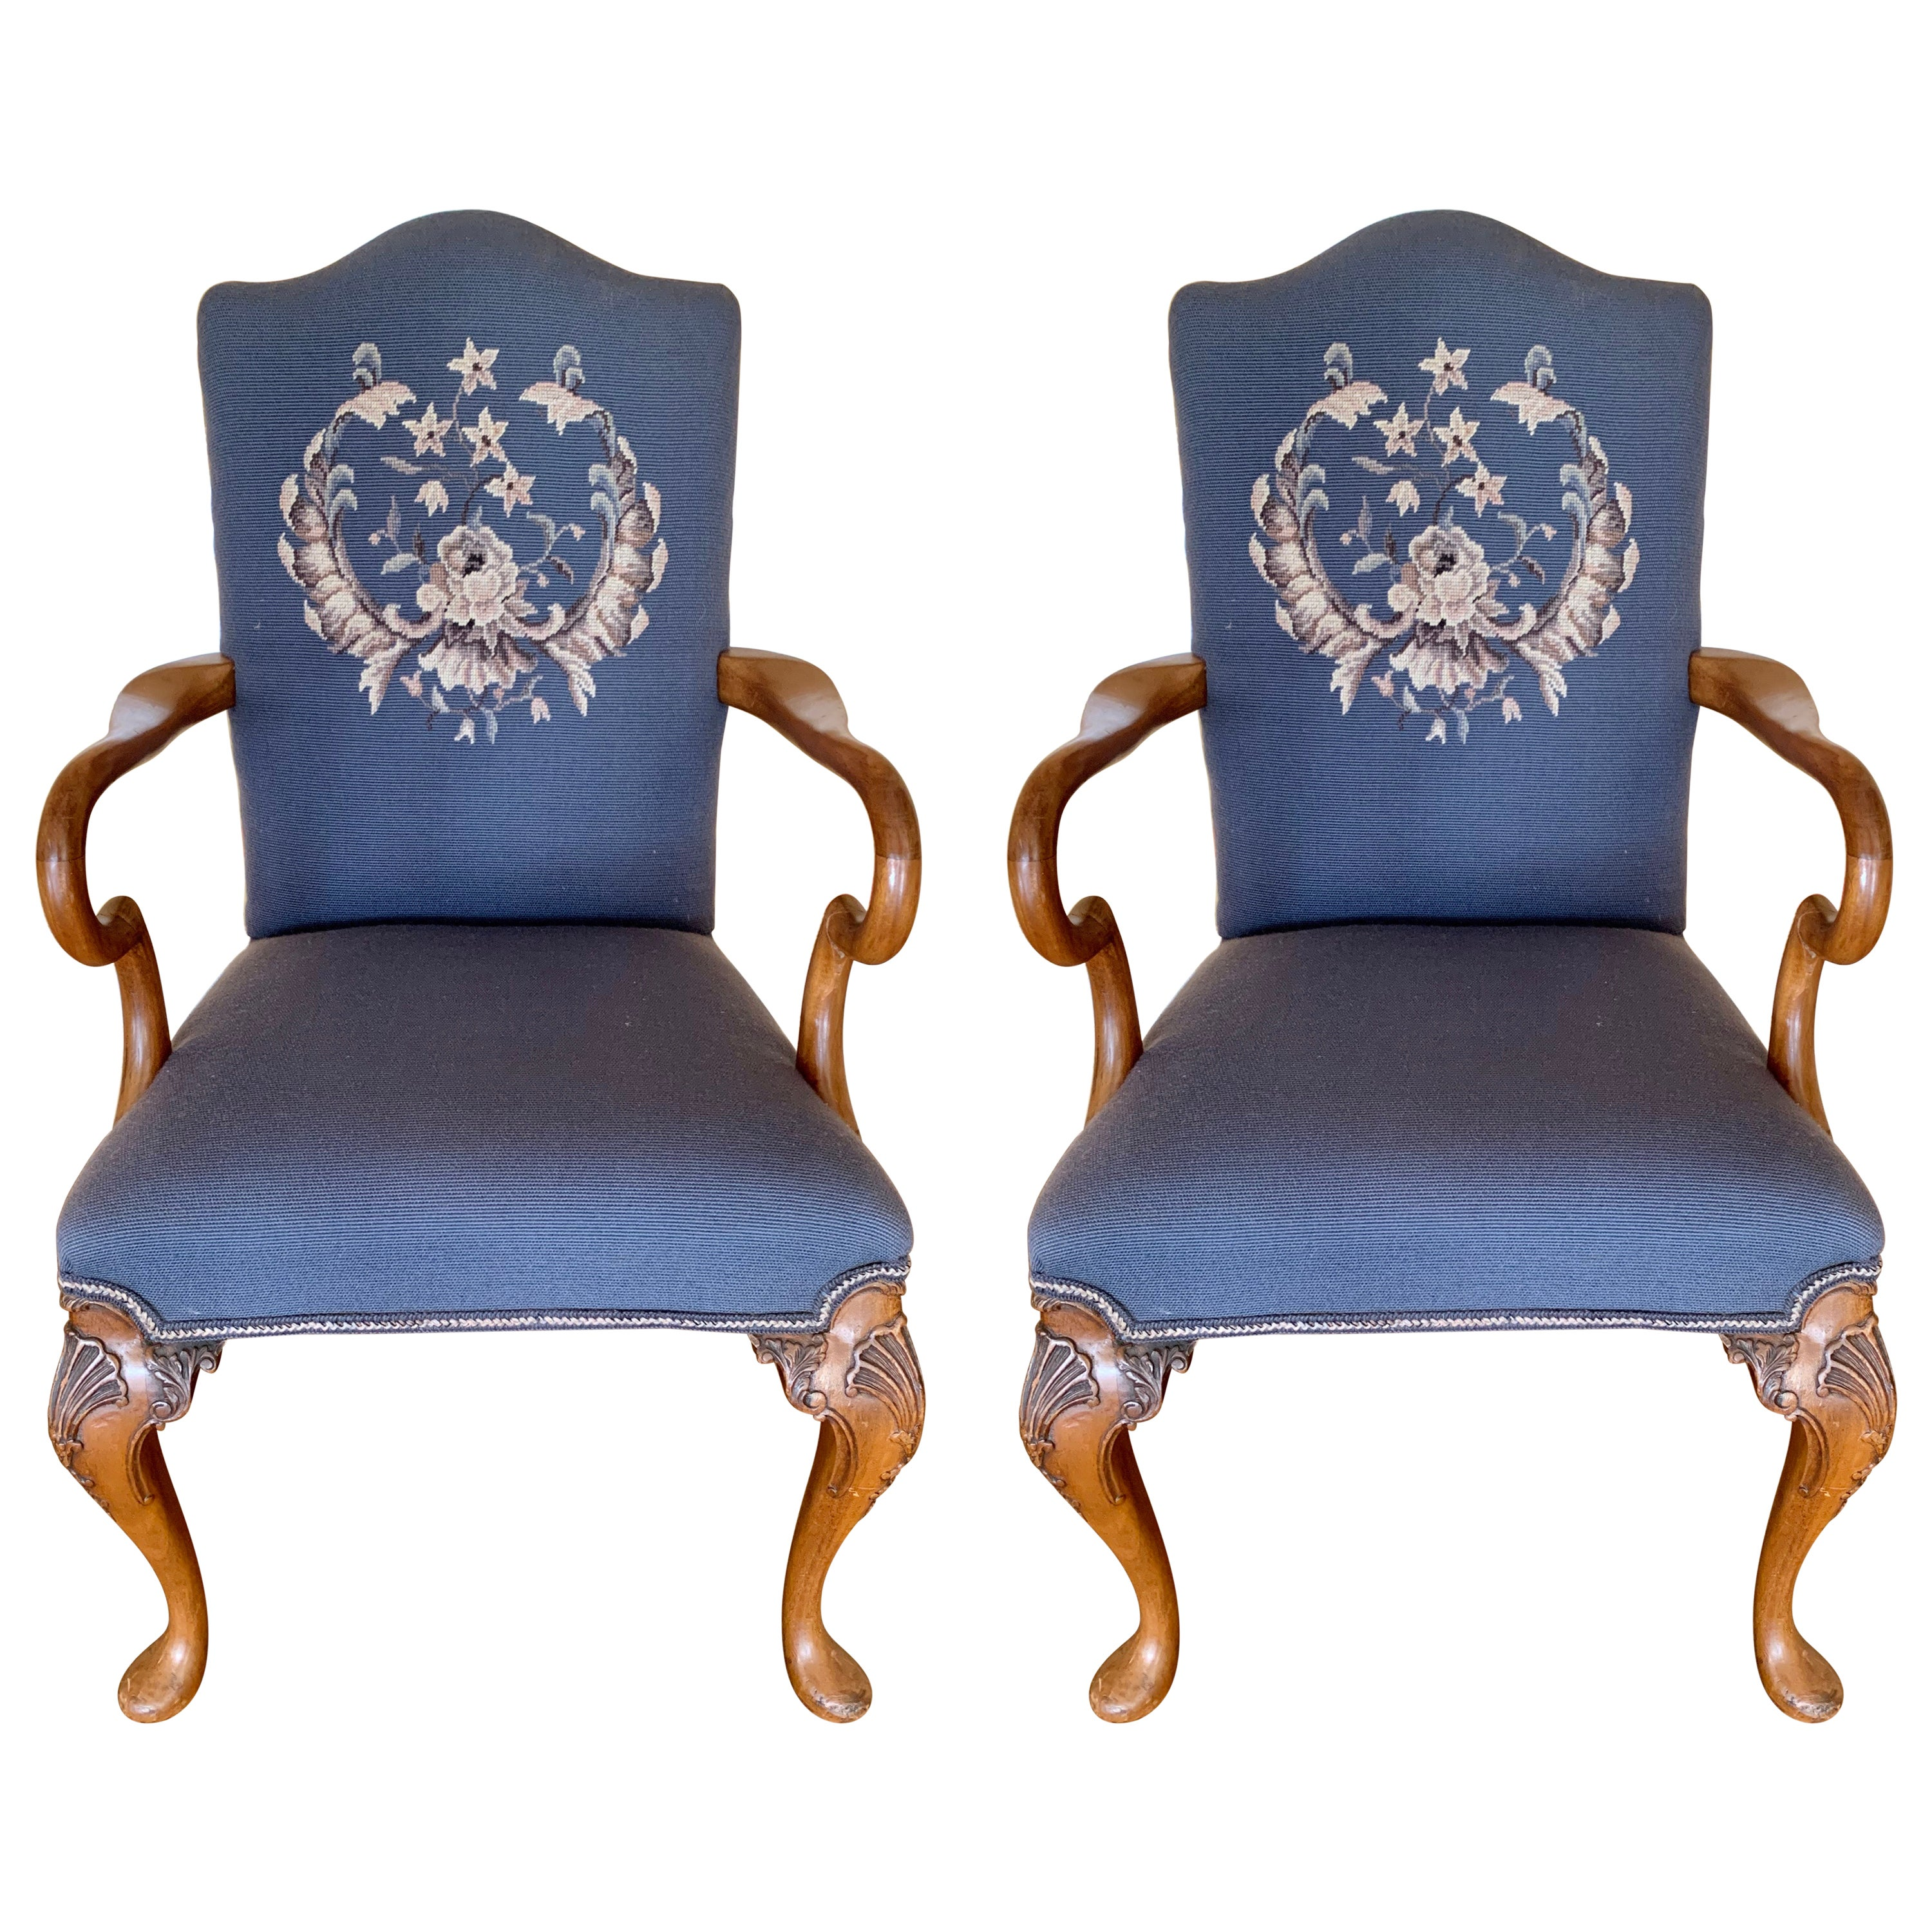 Carved Walnut Embroidered Needlepoint Dining Chairs, Pair